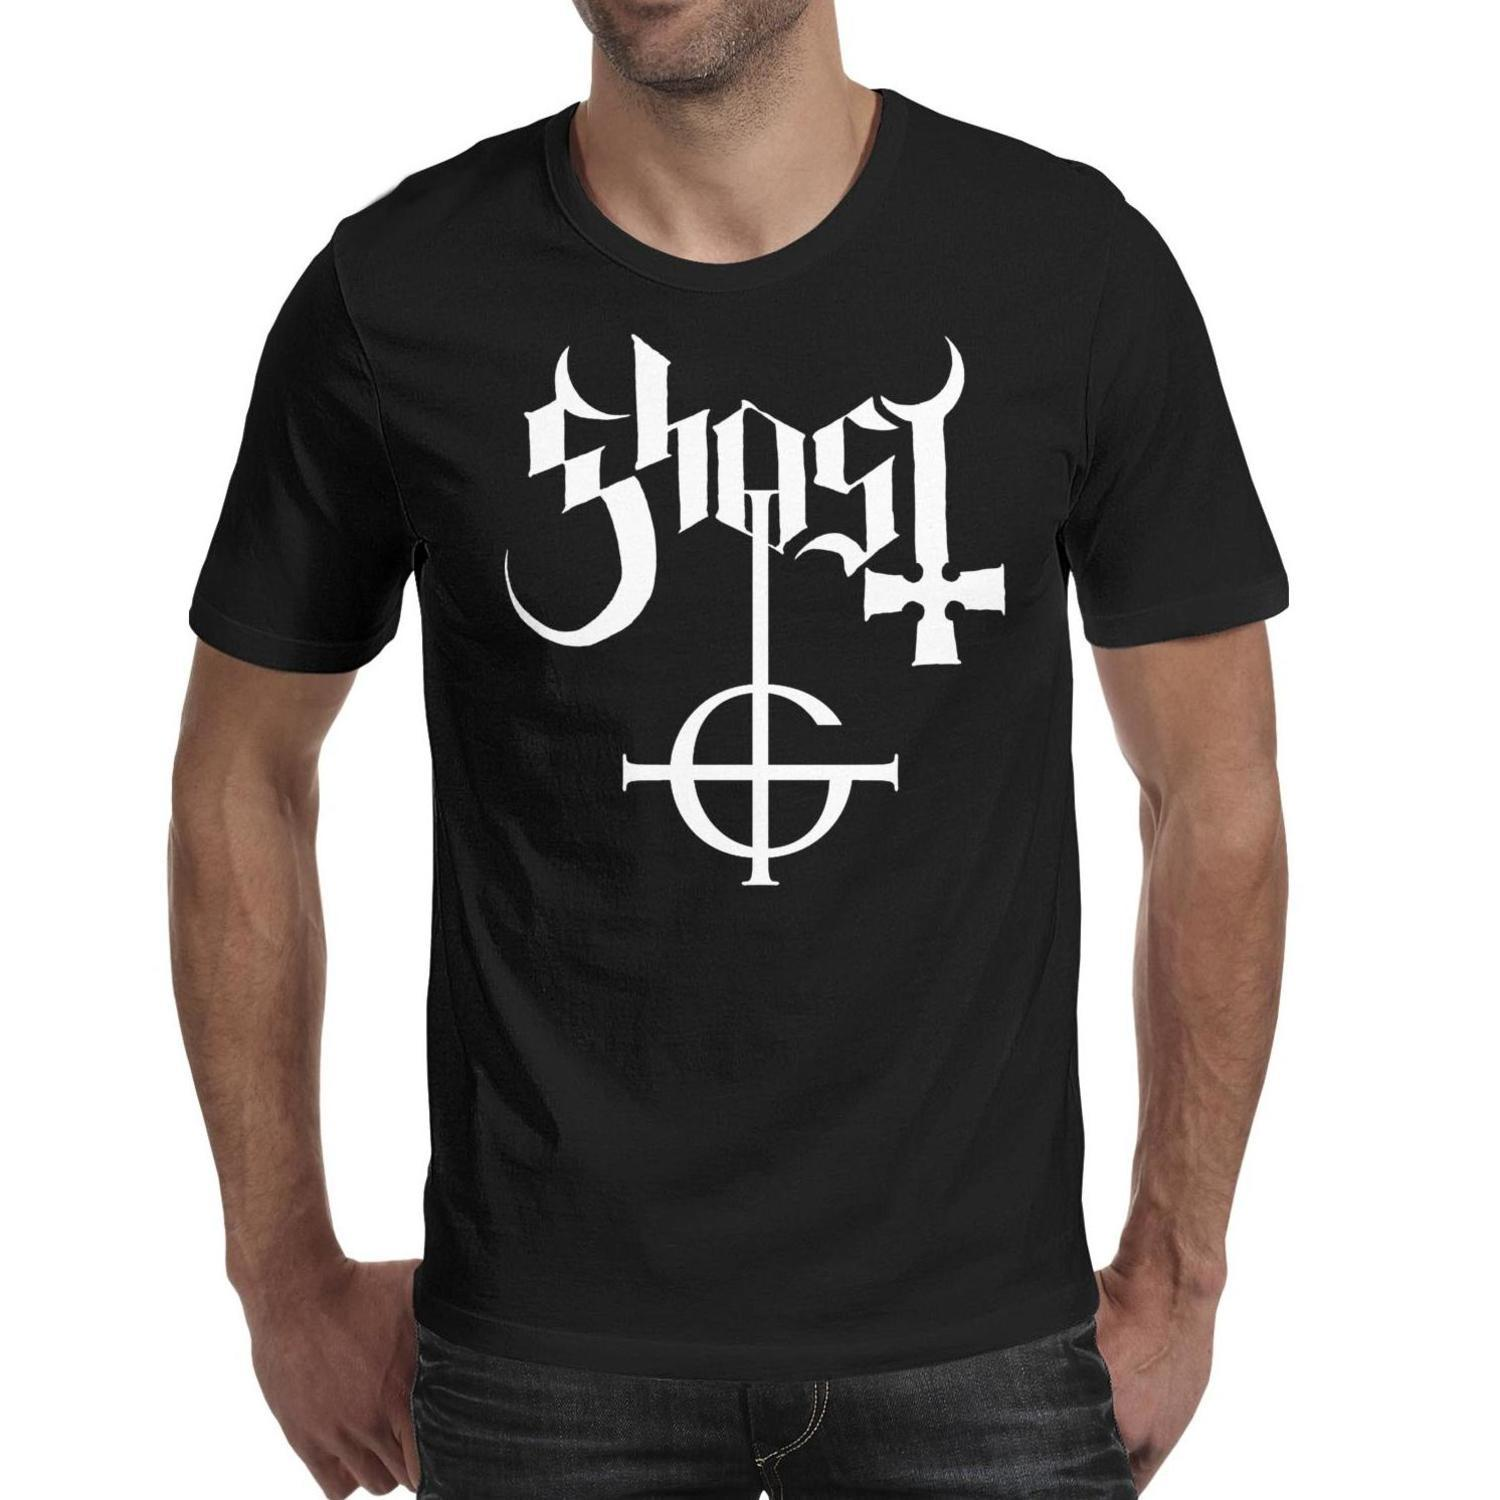 Ghost-Popular-Swedish-arts-heavy metal band logo black t shirt,shirts,t shirts,tee shirts printing funny vintage designer crazy friends athl